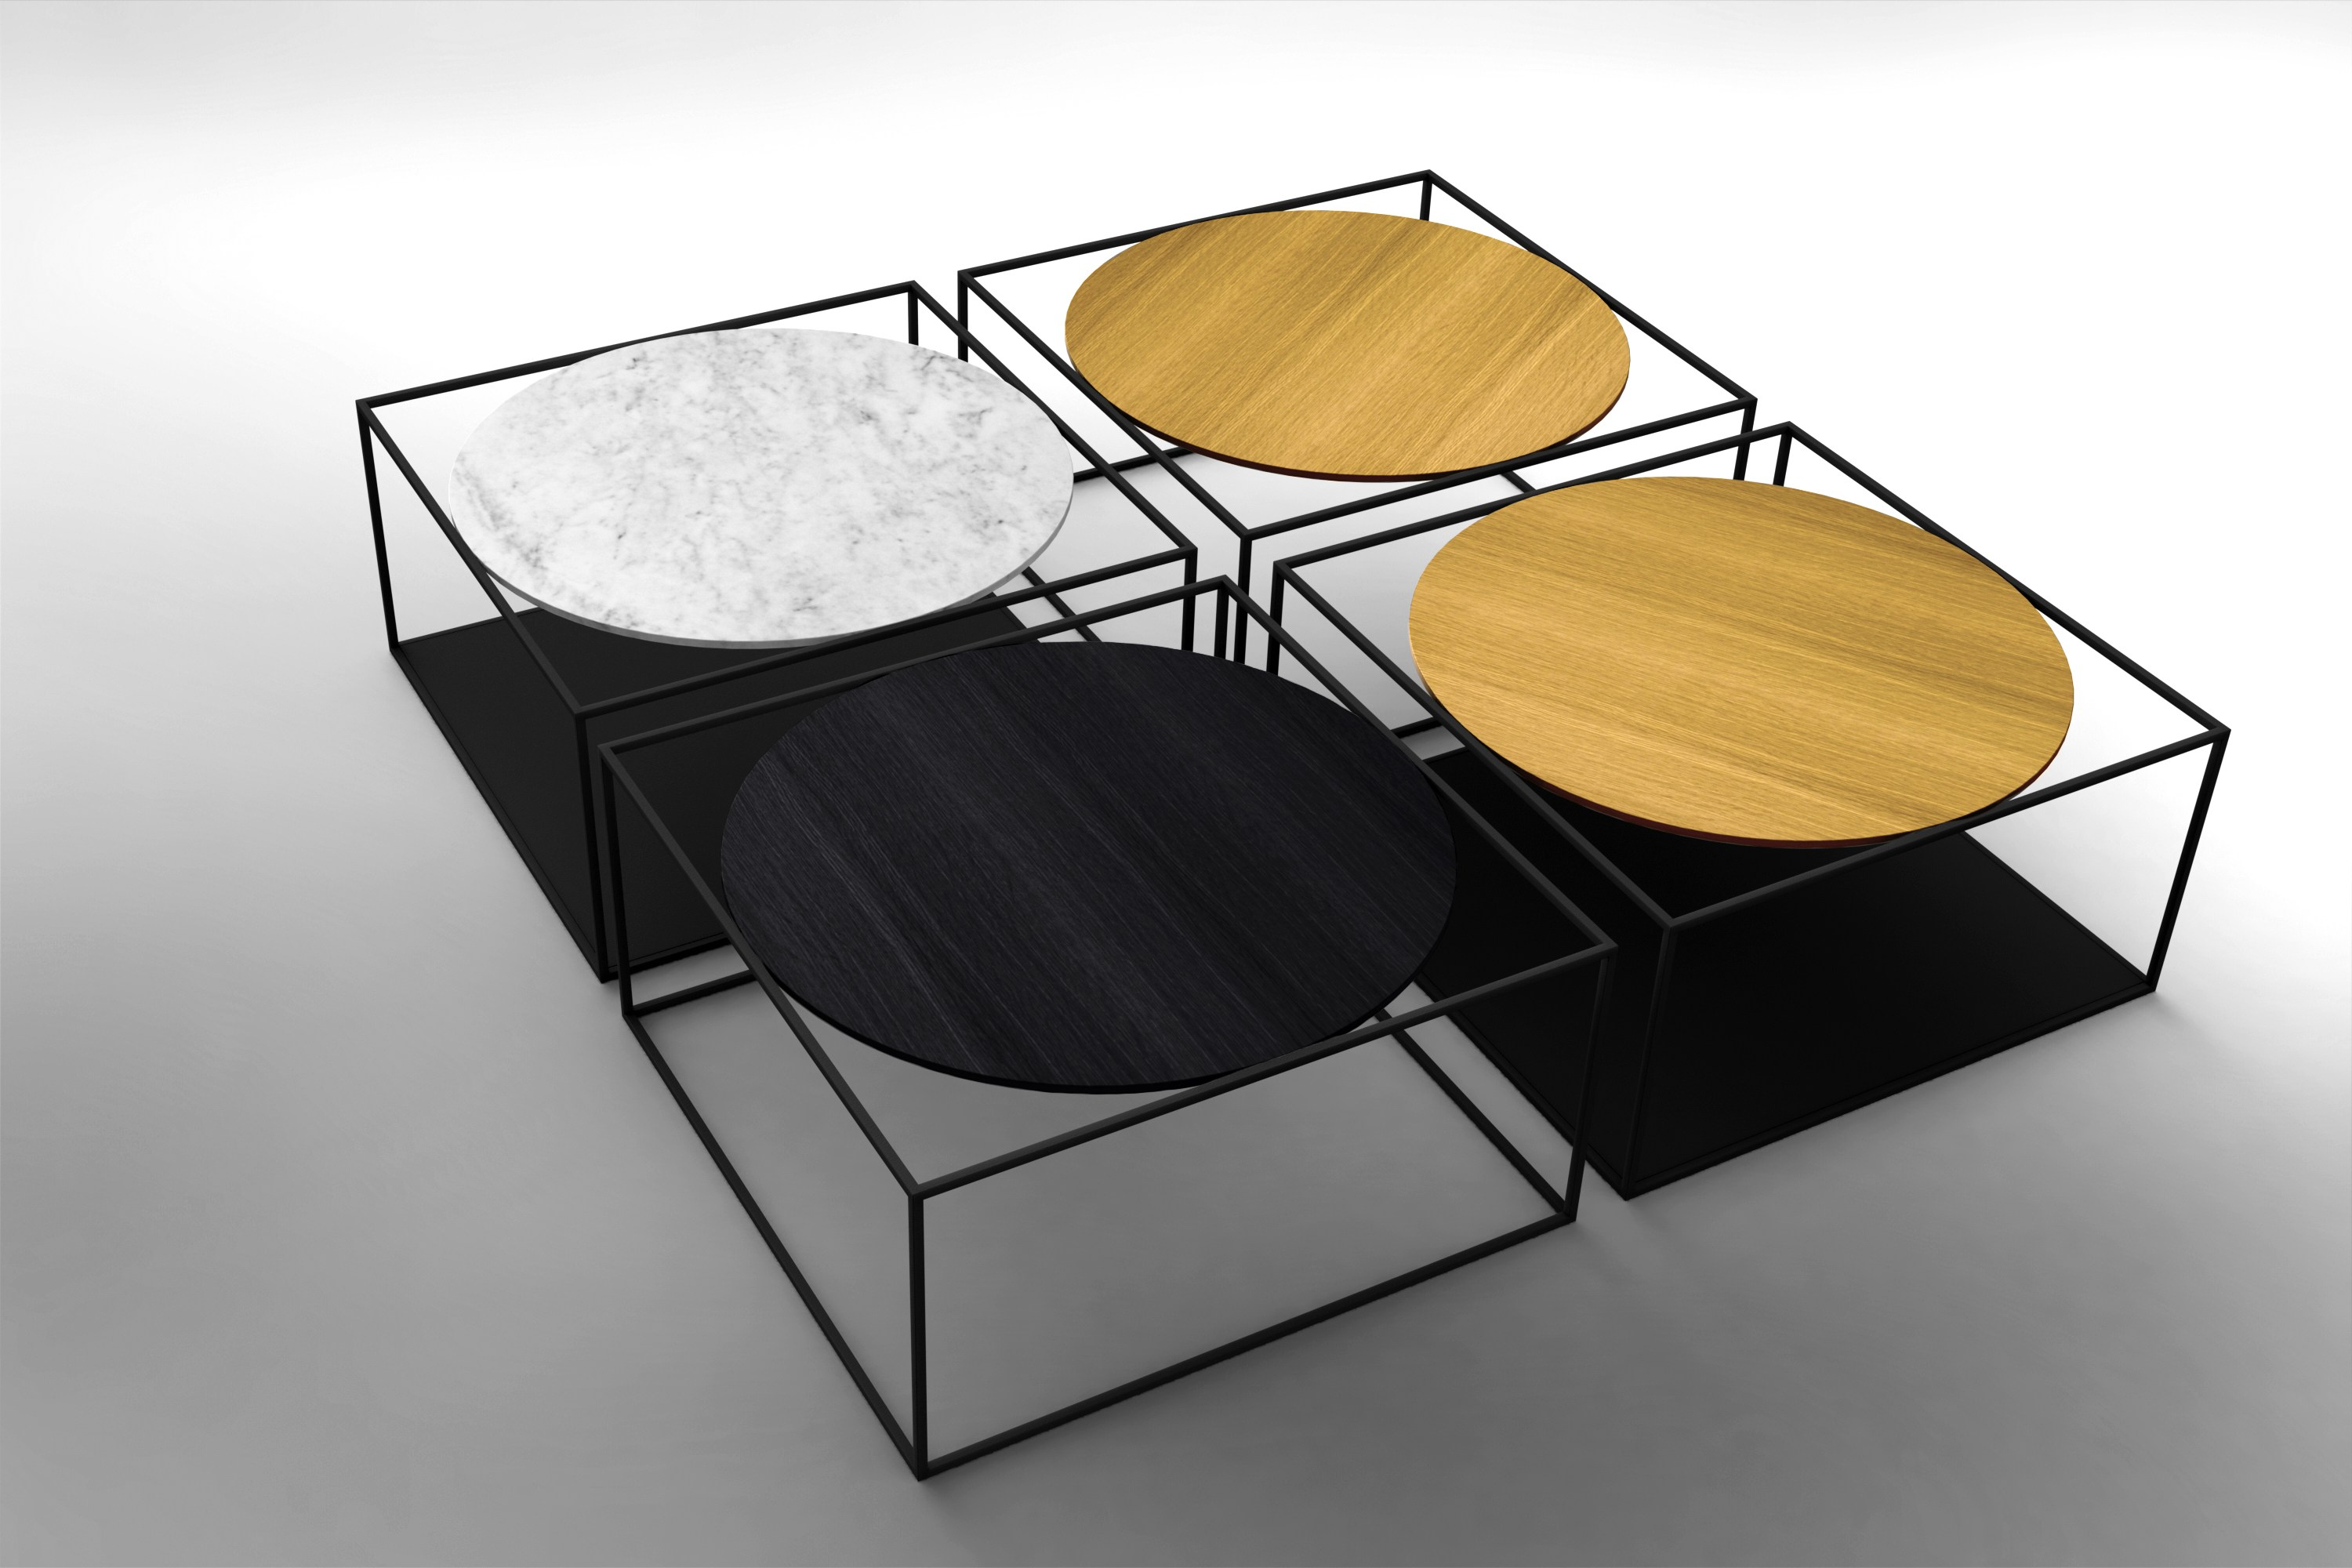 G3 wooden coffee table by roche bobois design johan lindst n - Roche et bobois table ...